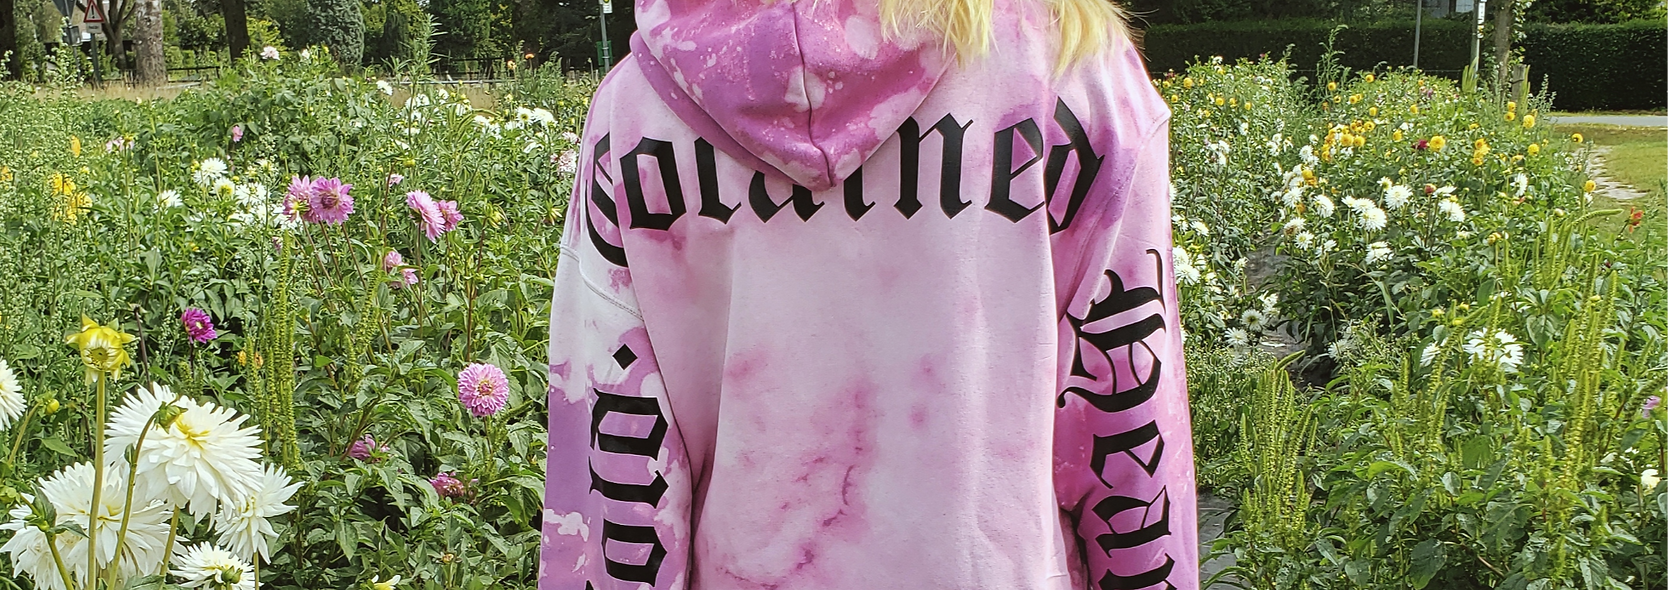 CocAIned Hoodie Oversized (M/L)